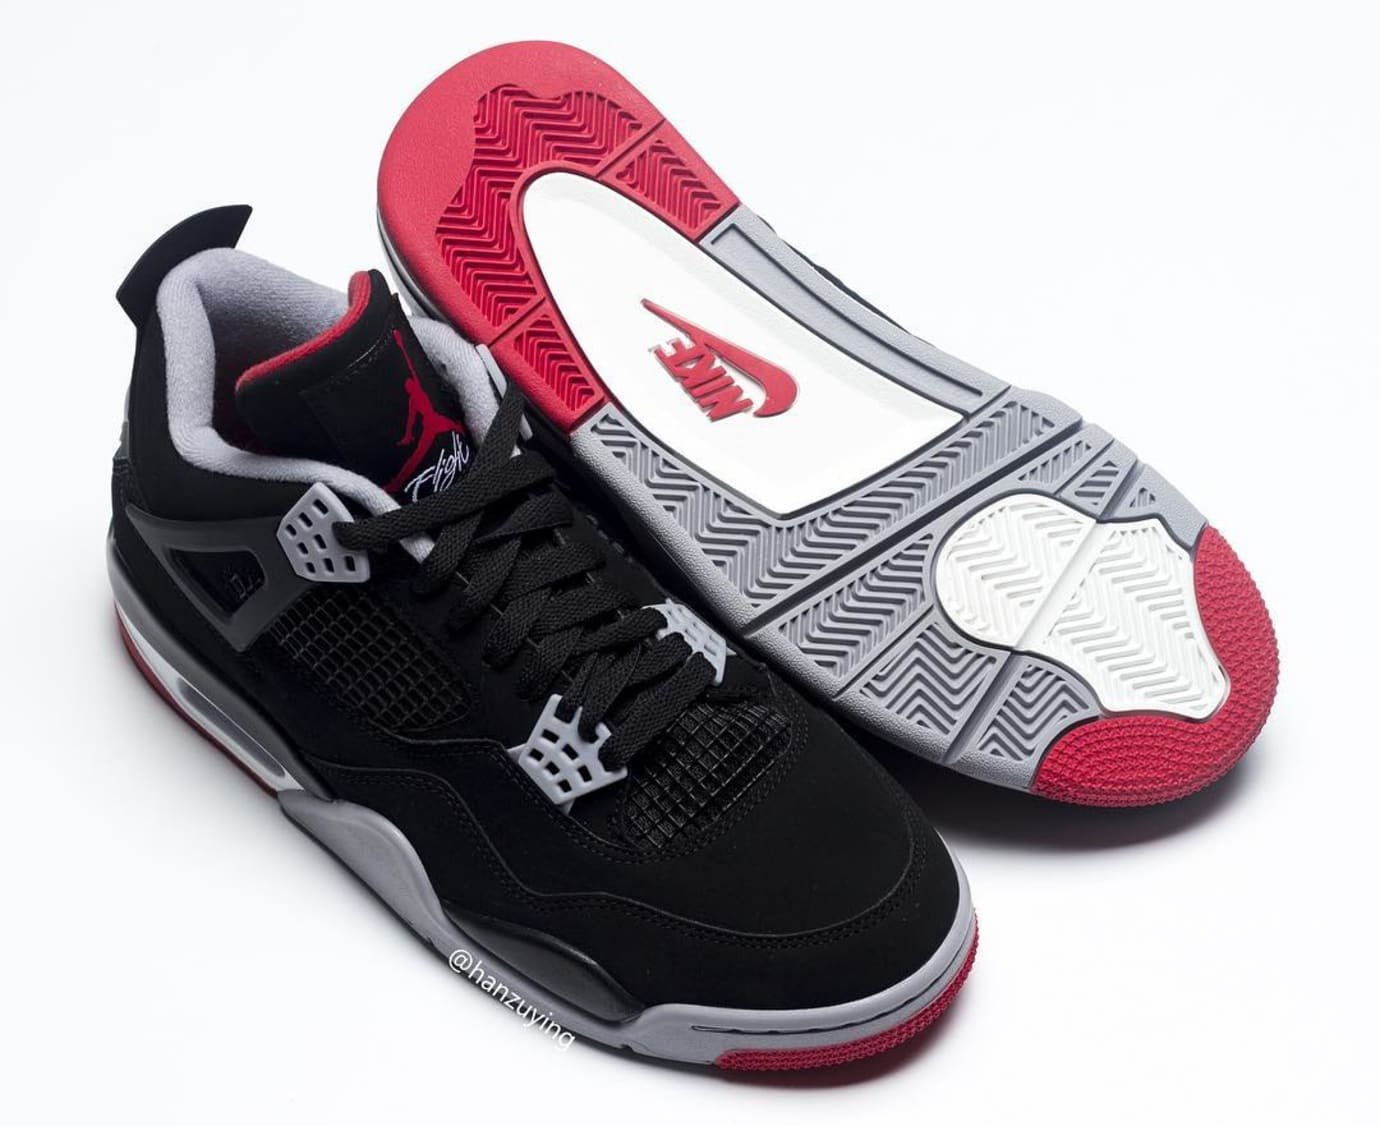 Air Jordan 4 Retro 'Bred' 2019 308497-060 Sole